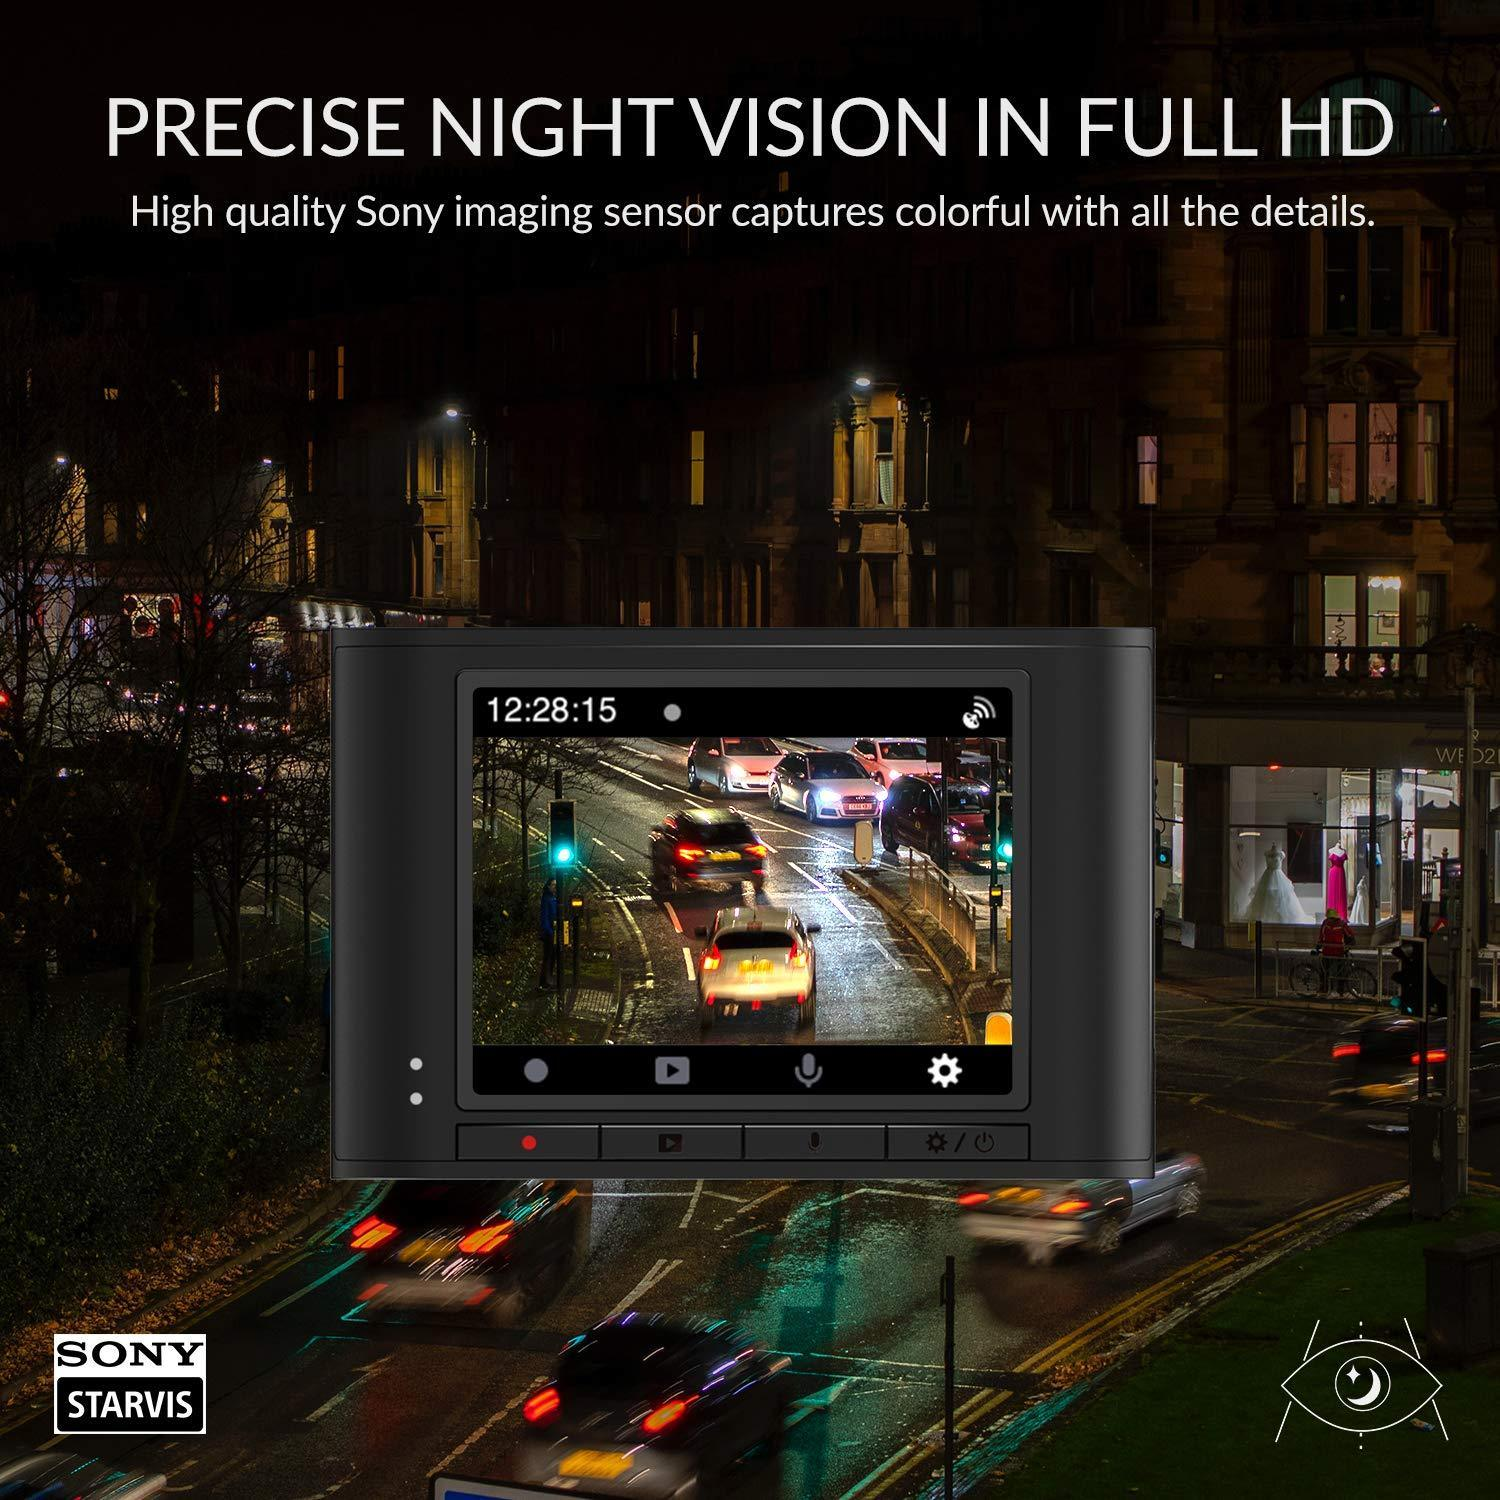 Precise Night Vision in full HD - High quality Sony imaging sensor captures colourful images with all the details